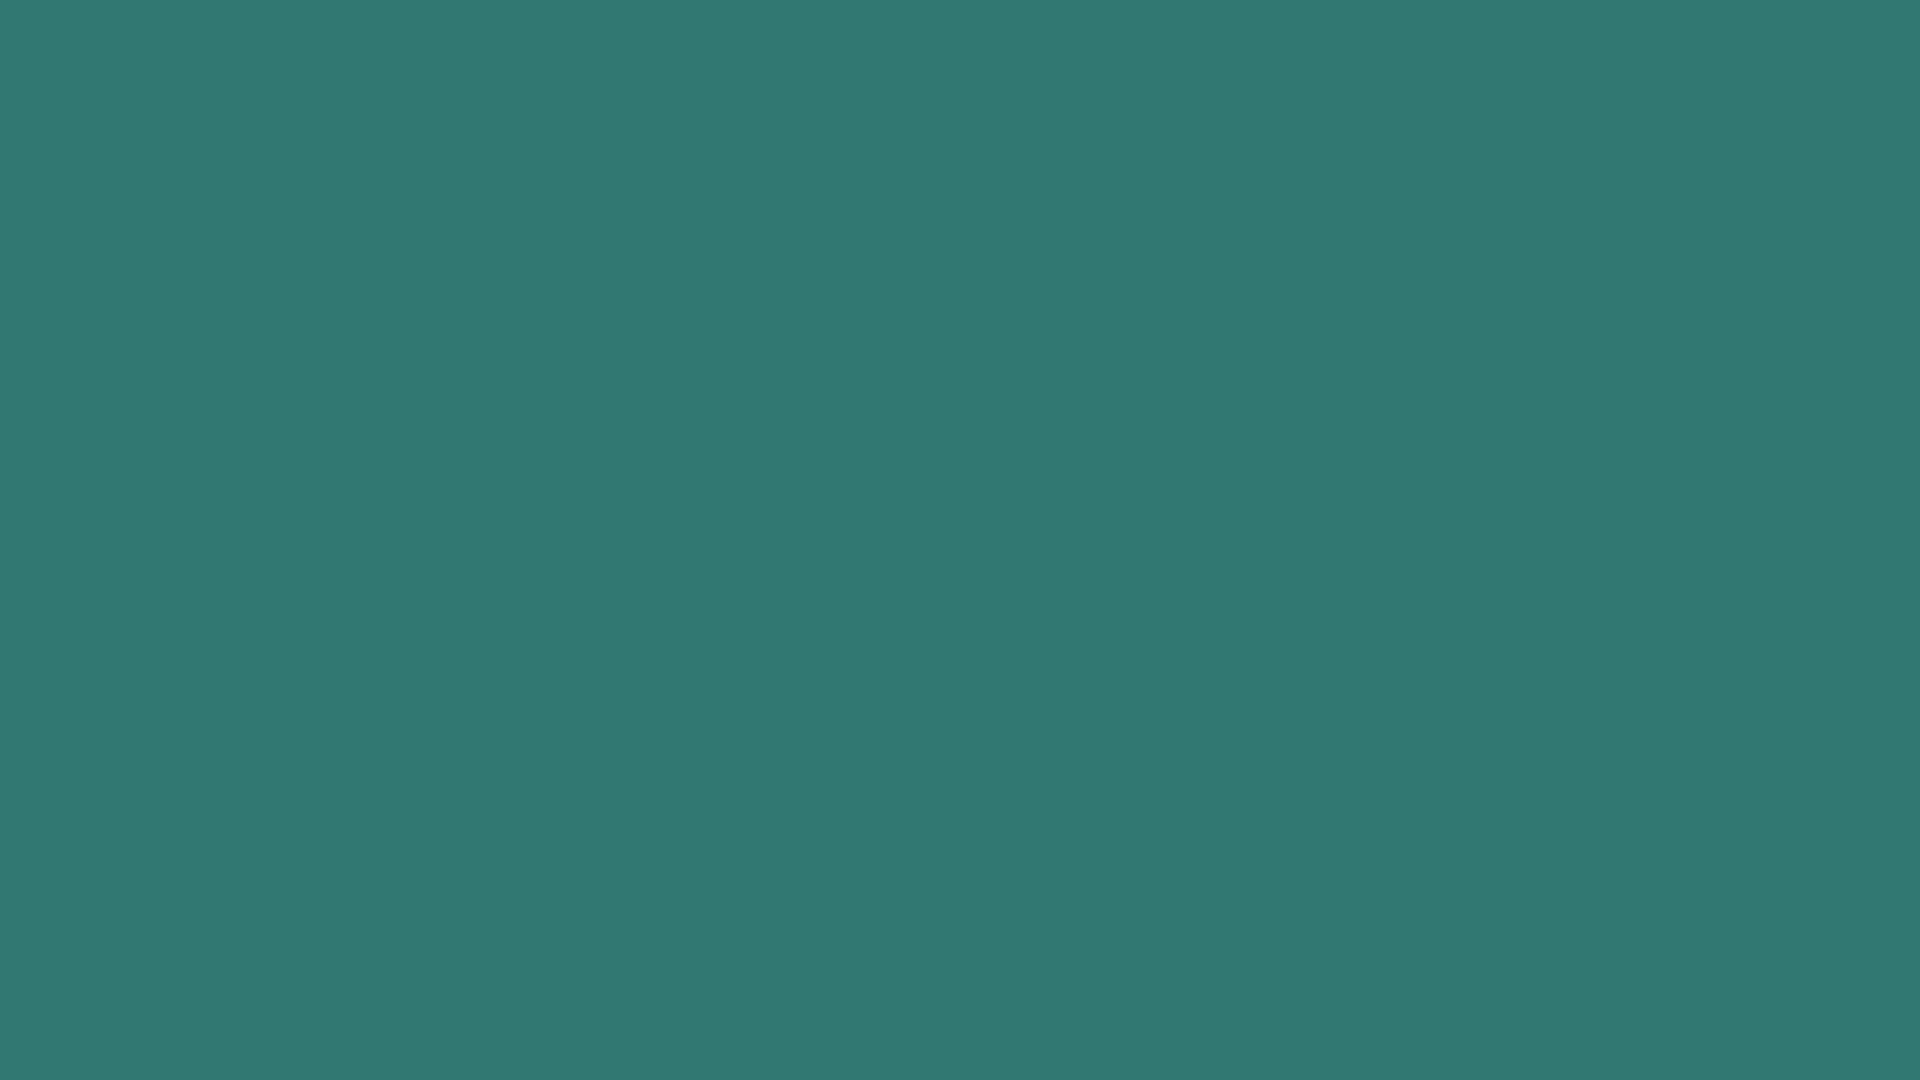 1920x1080 Myrtle Green Solid Color Background